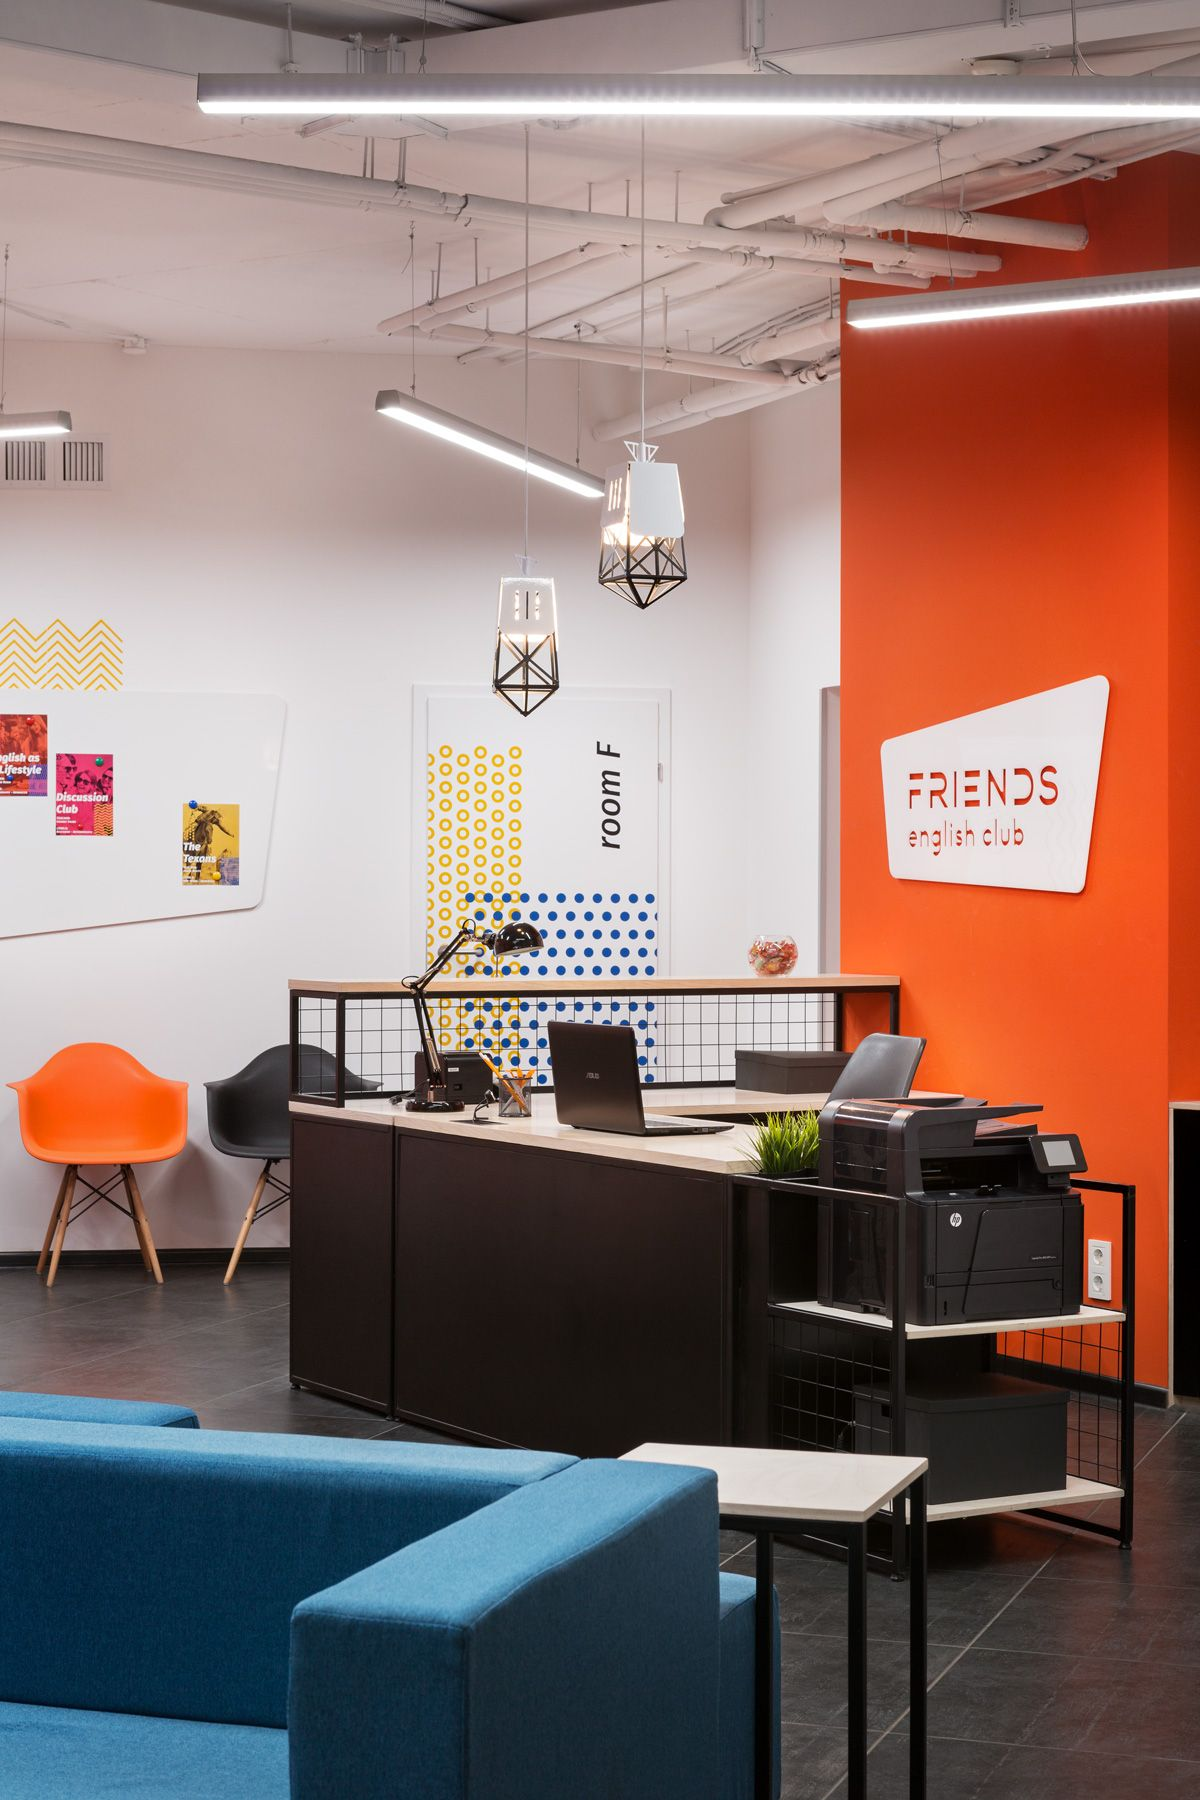 Innovative English Classrooms ~ Friends english club interior design for the